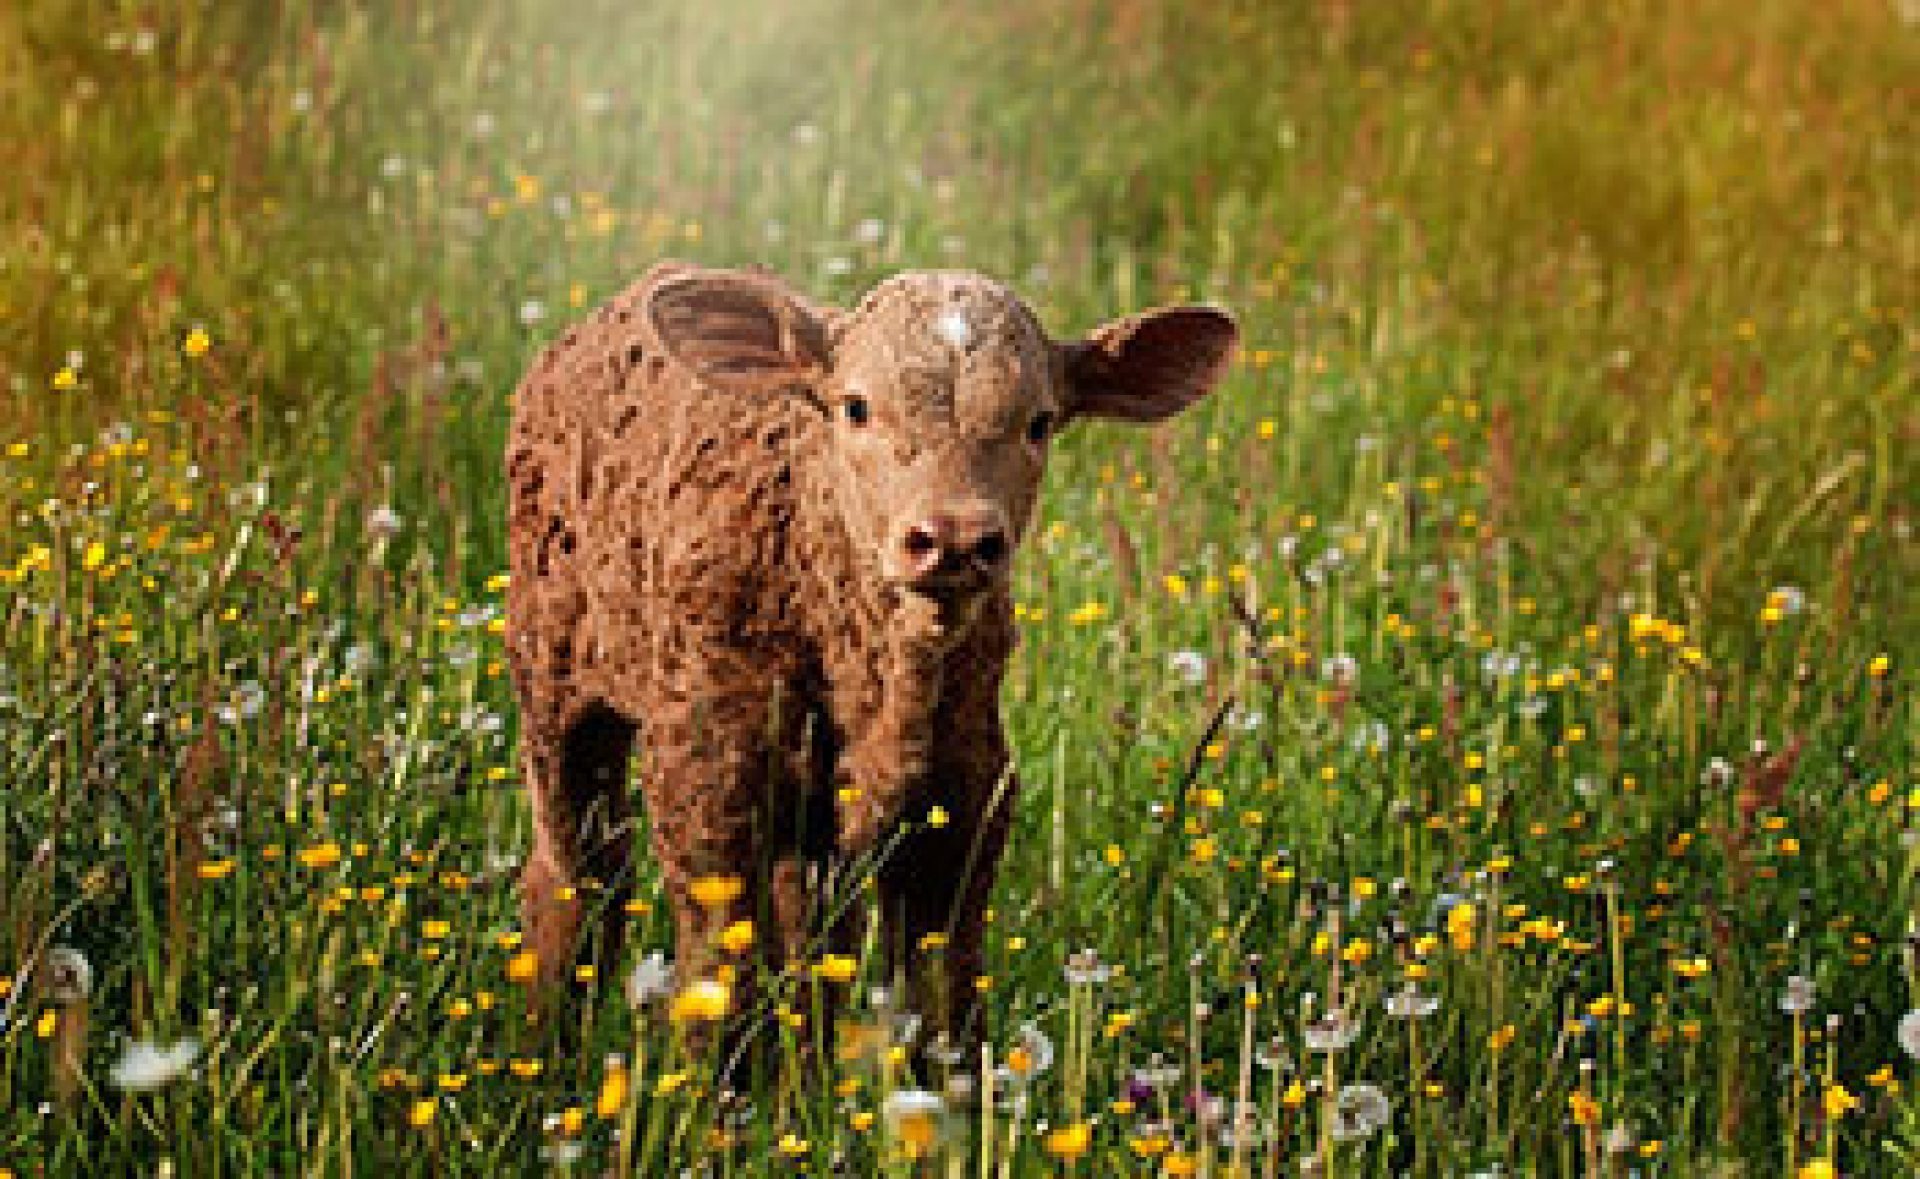 Brown calf with green grass background